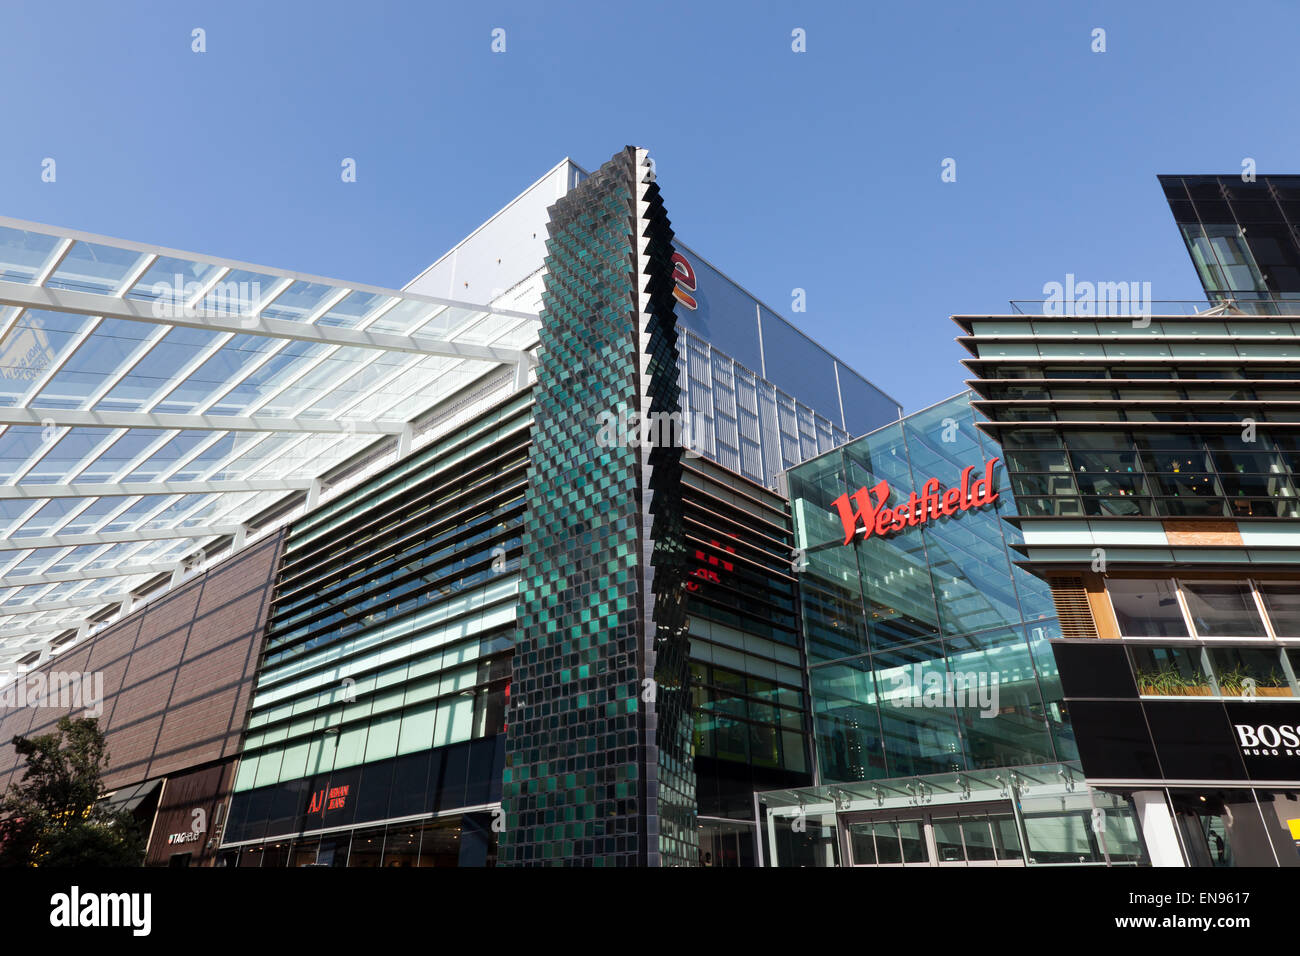 Part of the Westfield Shopping Centre Complex at Stratford London - Stock Image